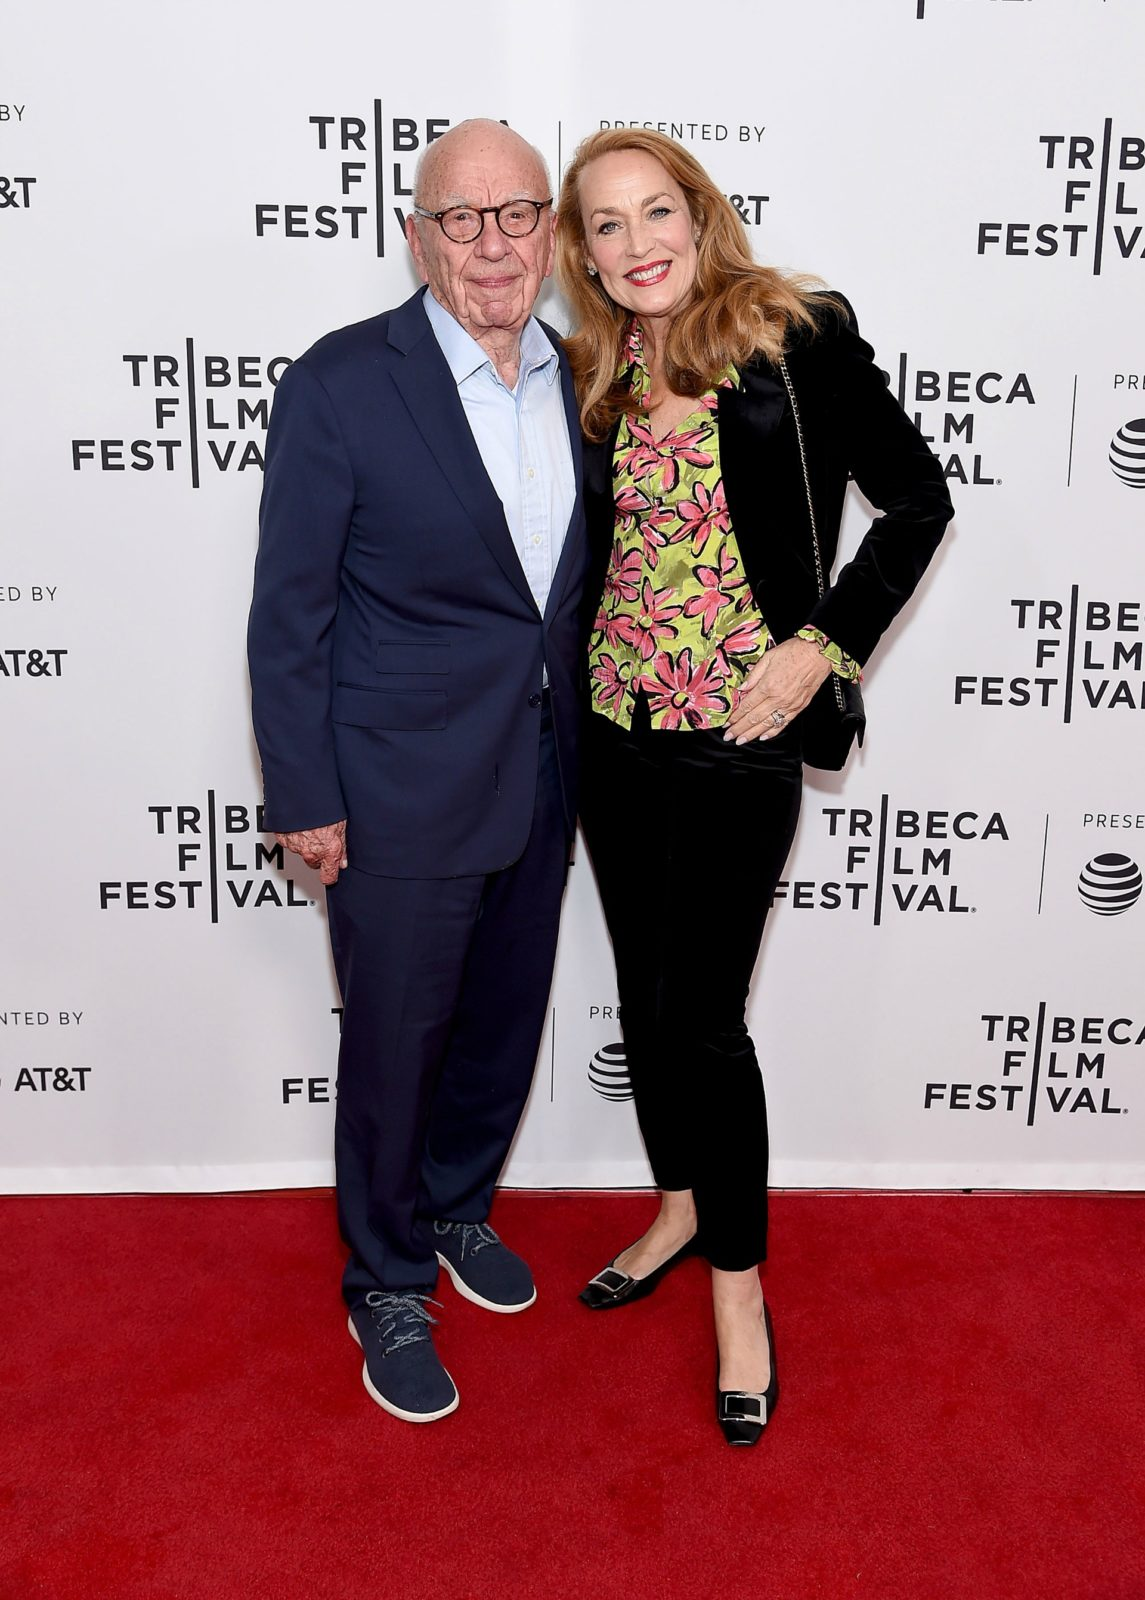 Jerry Hall and Rupert Murdoch were all smiles as they attended the star-studded screening of The Quiet One during Tribeca Film Festival inNew York City on Thursday. Source: Getty